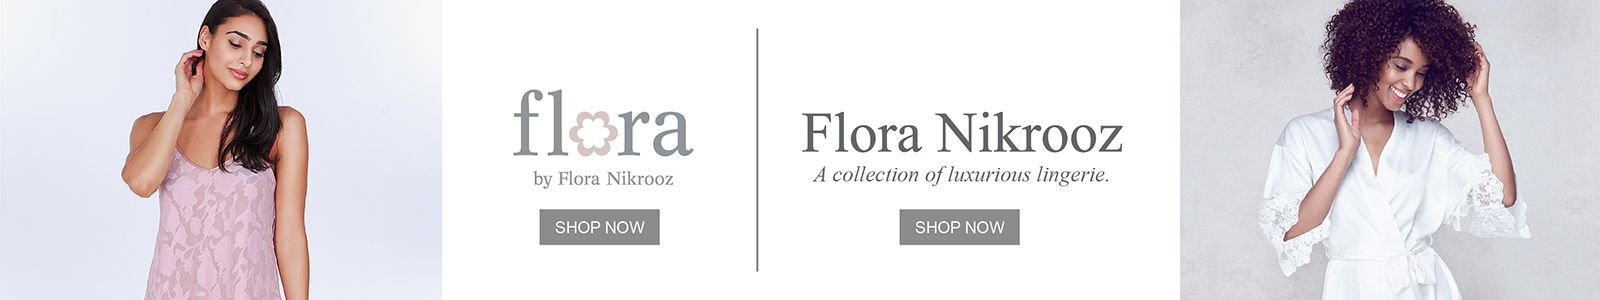 Flora by Flora N Krooz, Shop Now, Flora Nikrooz, a collection of luxurious lingerie, Shop Now